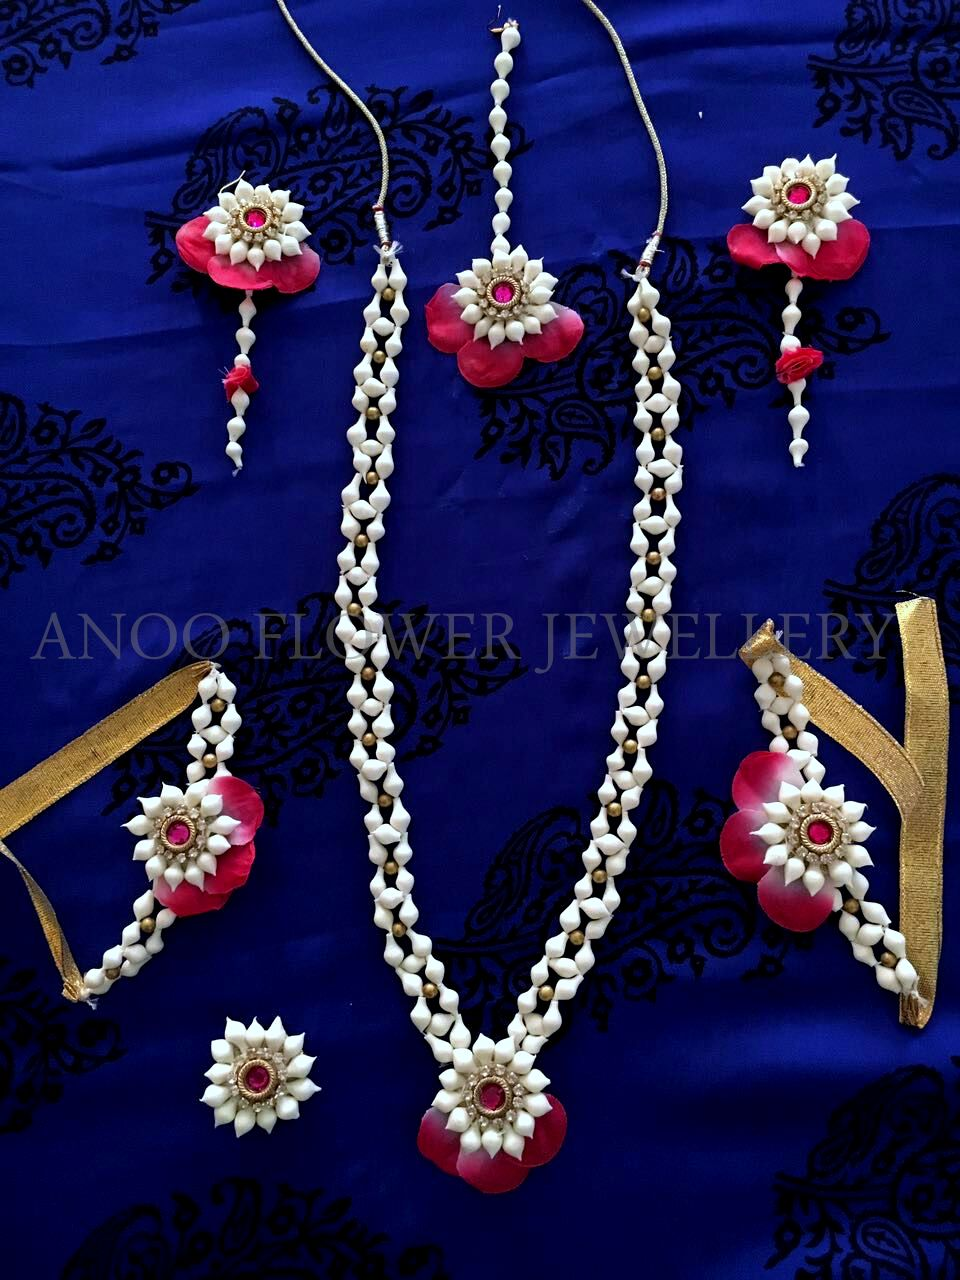 Buy Mehndi Flower Jewellery : Artificial flower jewellery for mehndi online india